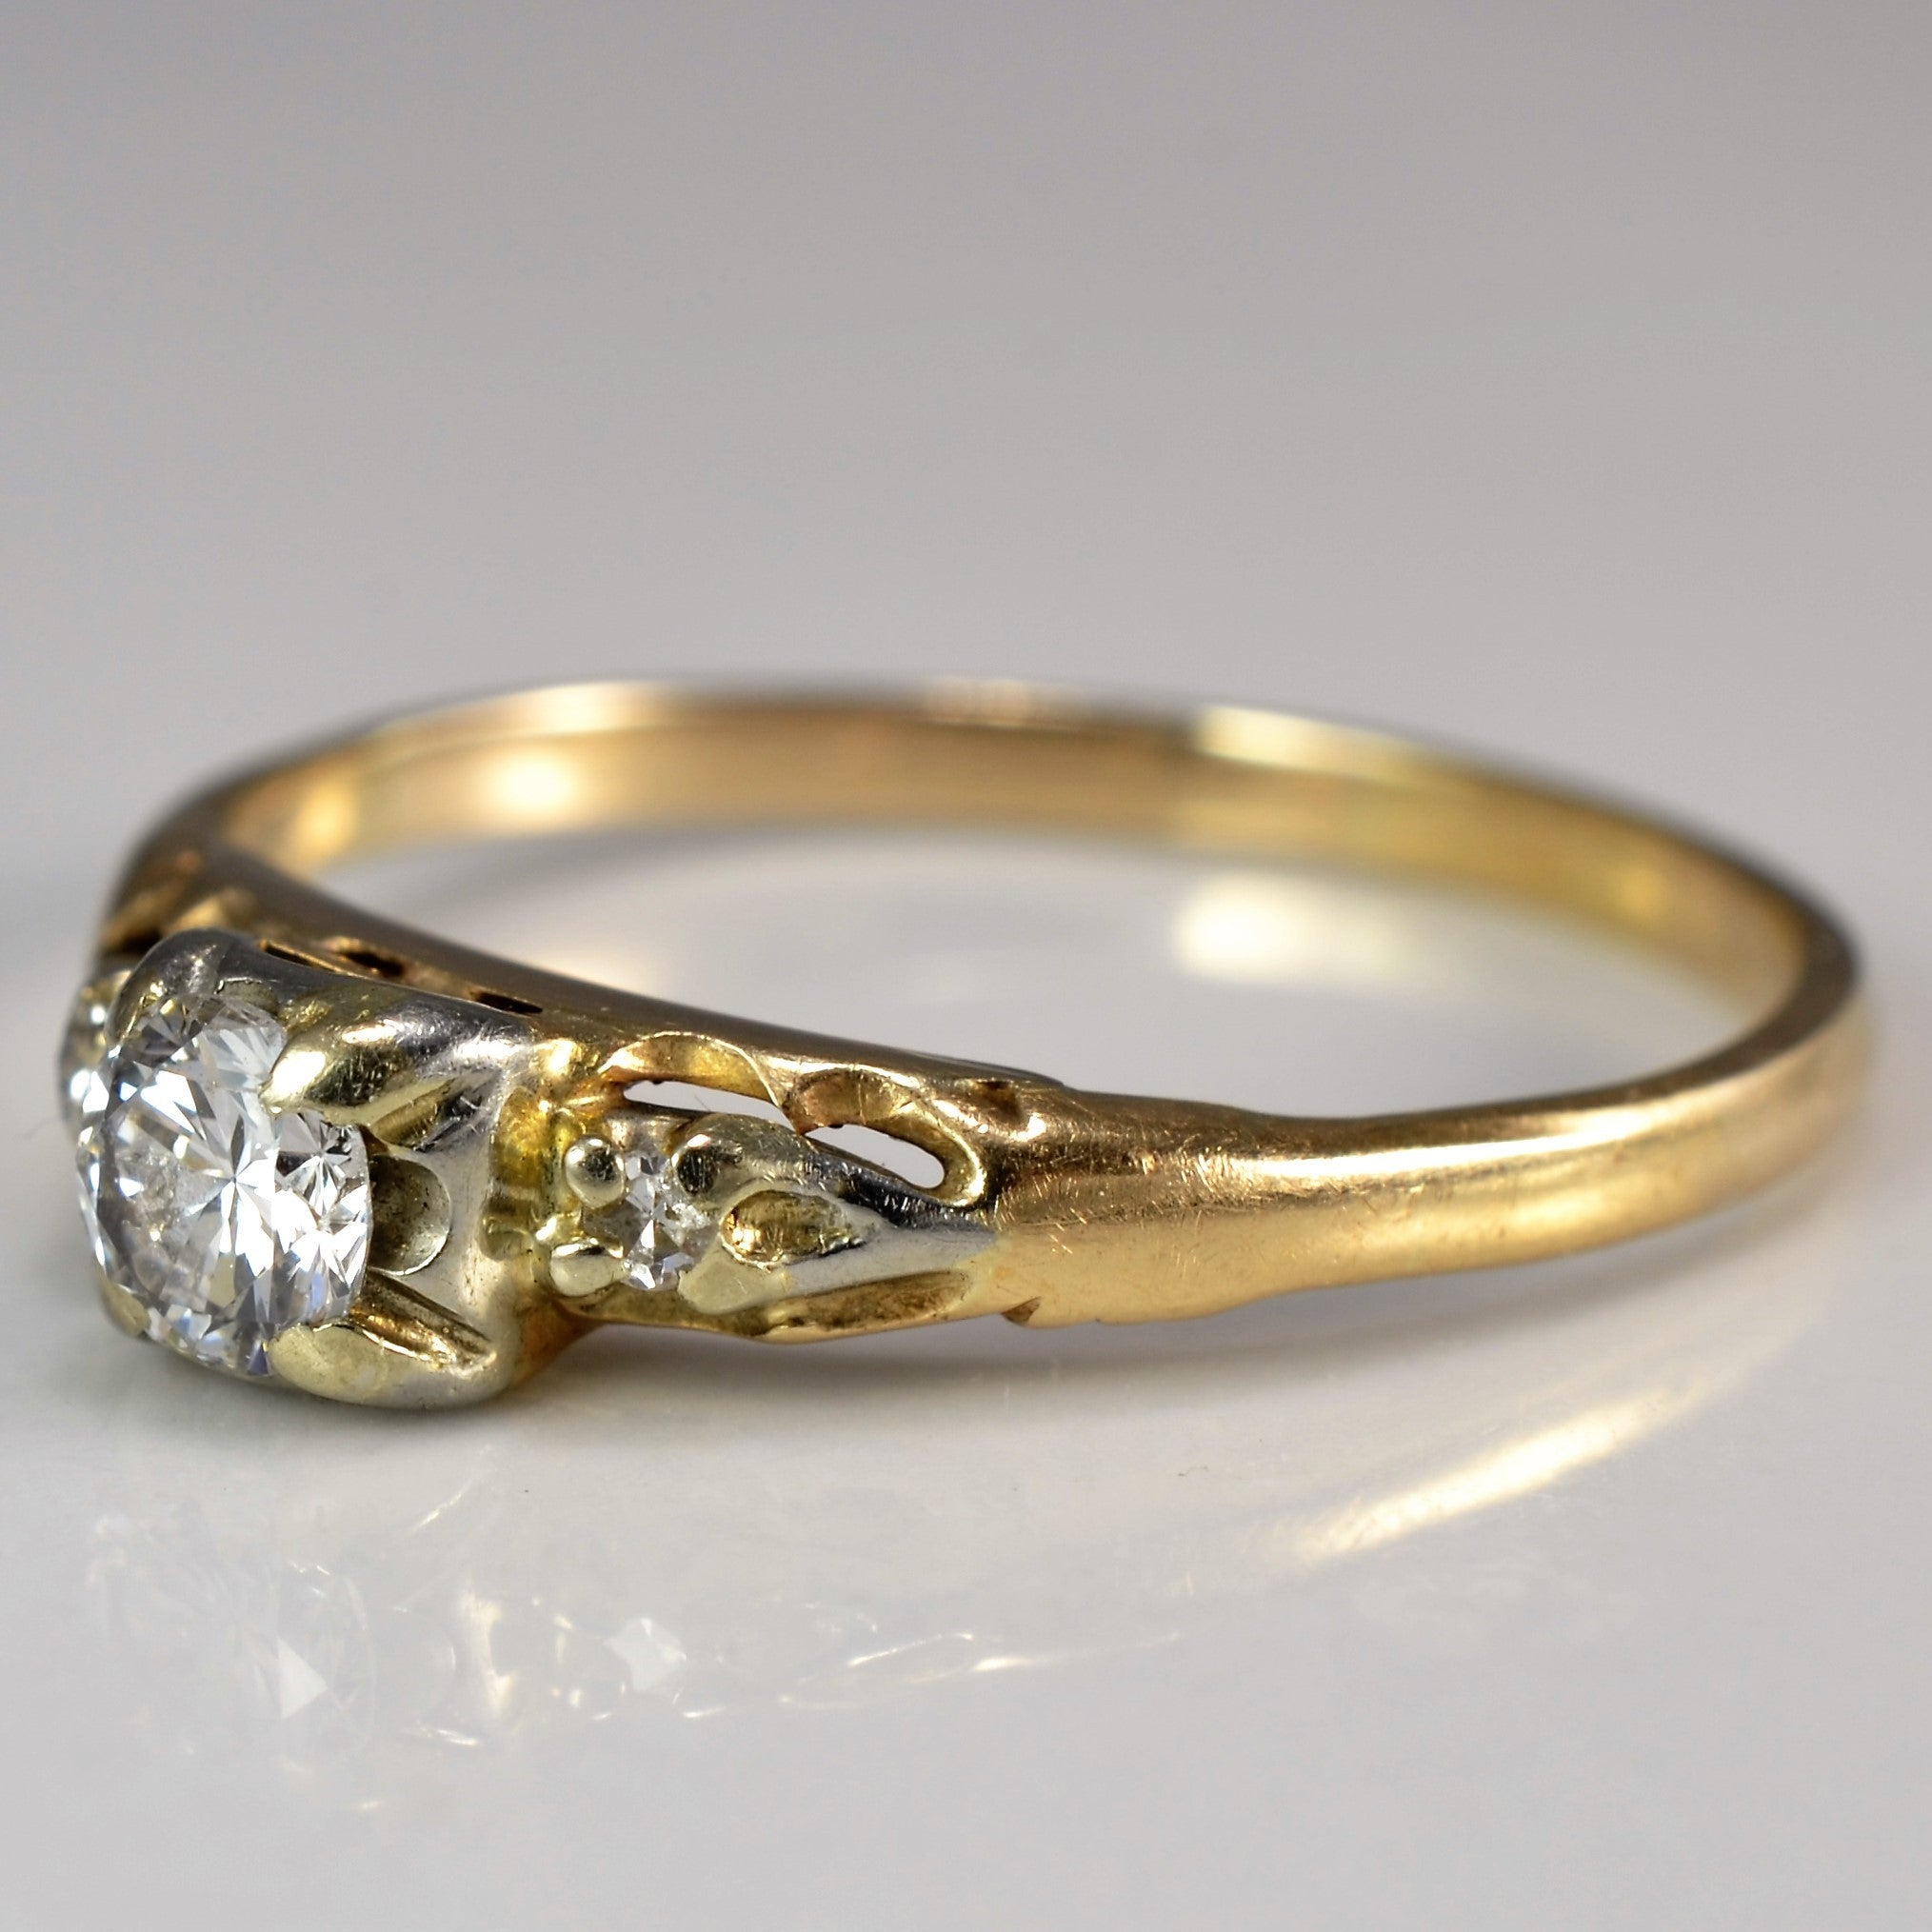 Vintage Diamond Engagement Ring | 0.25 ctw, SZ 8.25 |